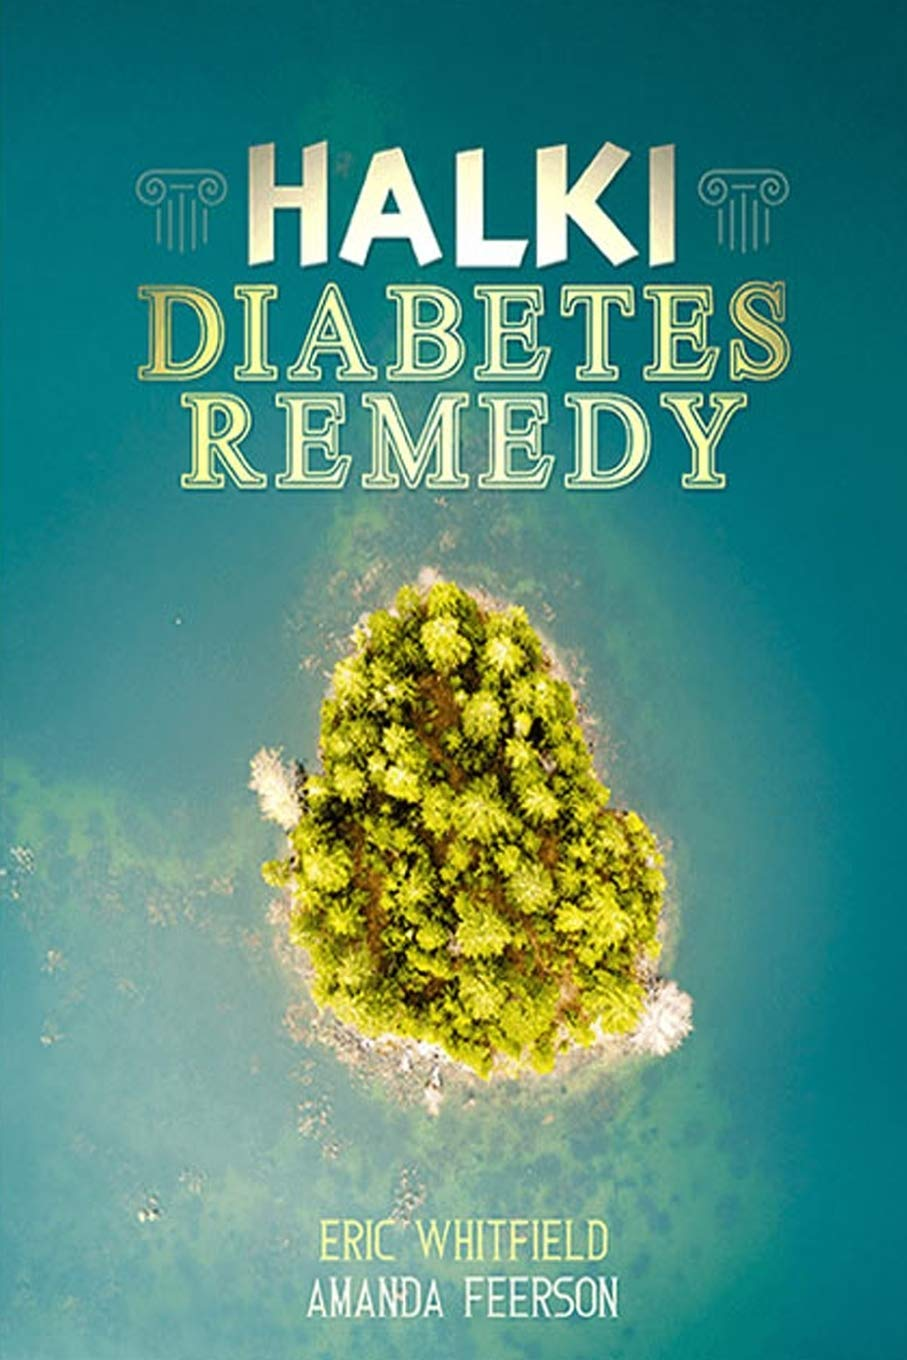 Reserve Diabetes  Halki Diabetes  Official Website